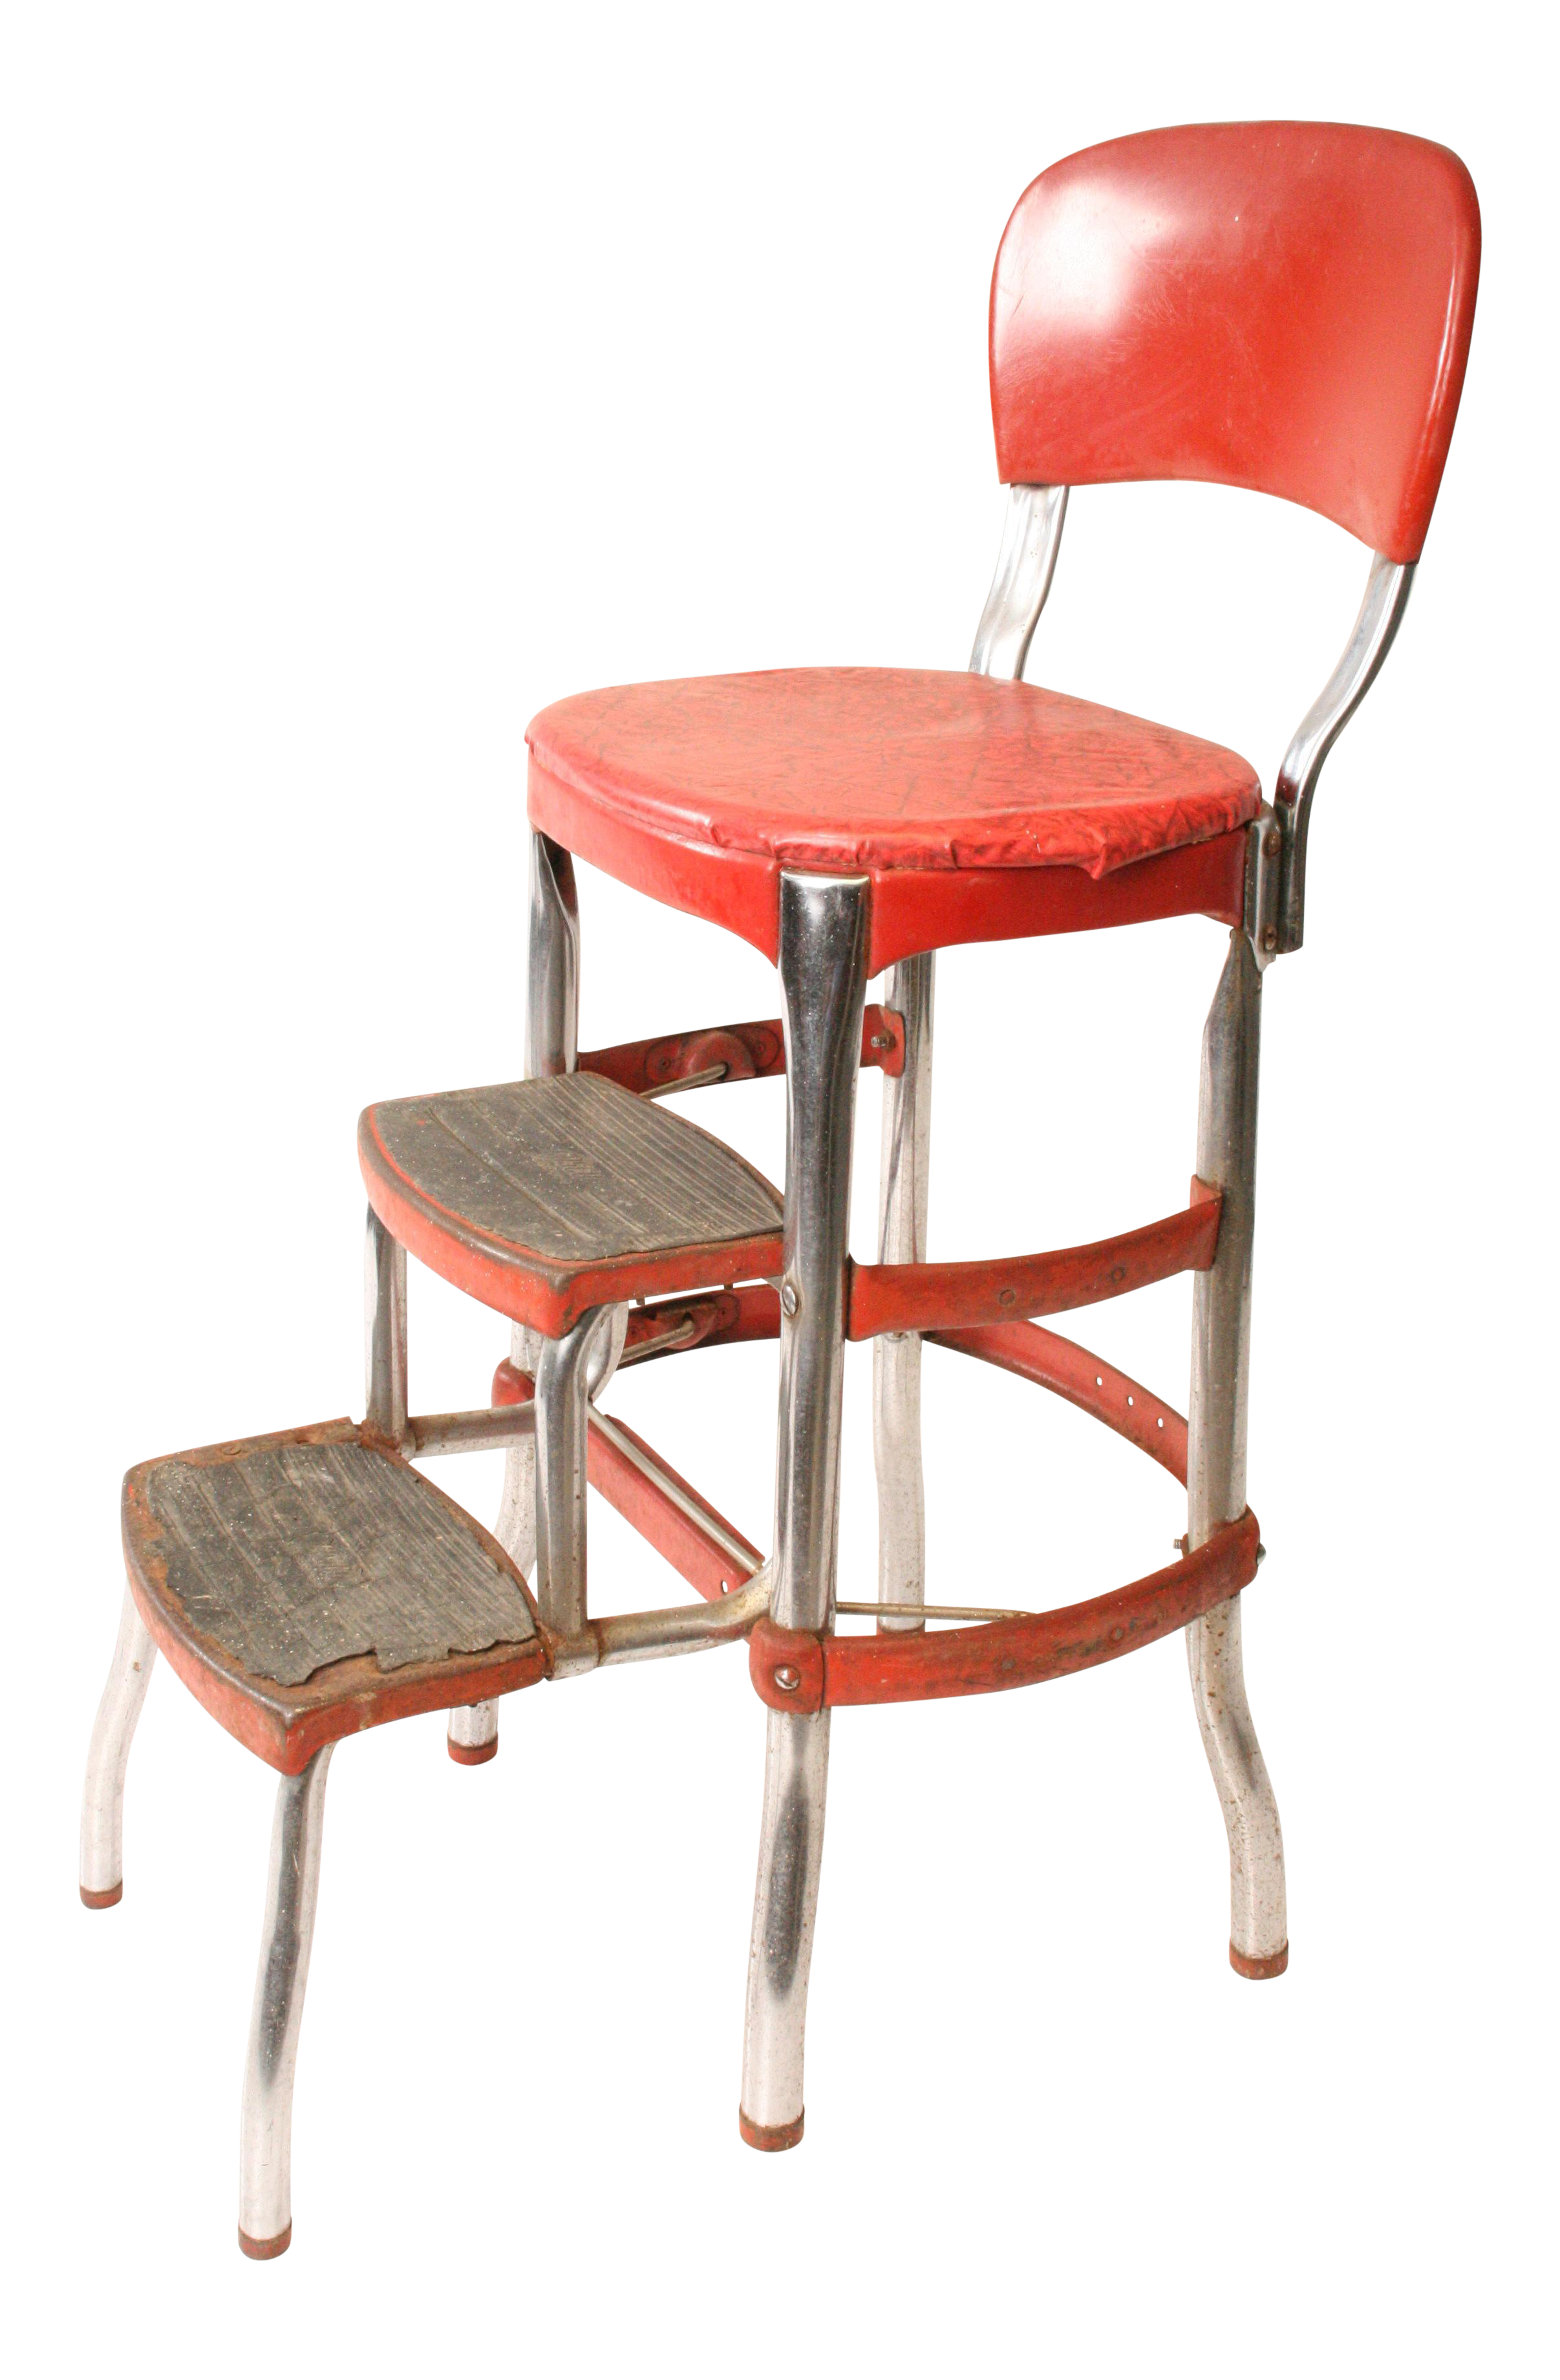 black benches to en skog hole gb ikea move metal in stools seat caf r stool seating easy thanks products cafe bar red the chairs